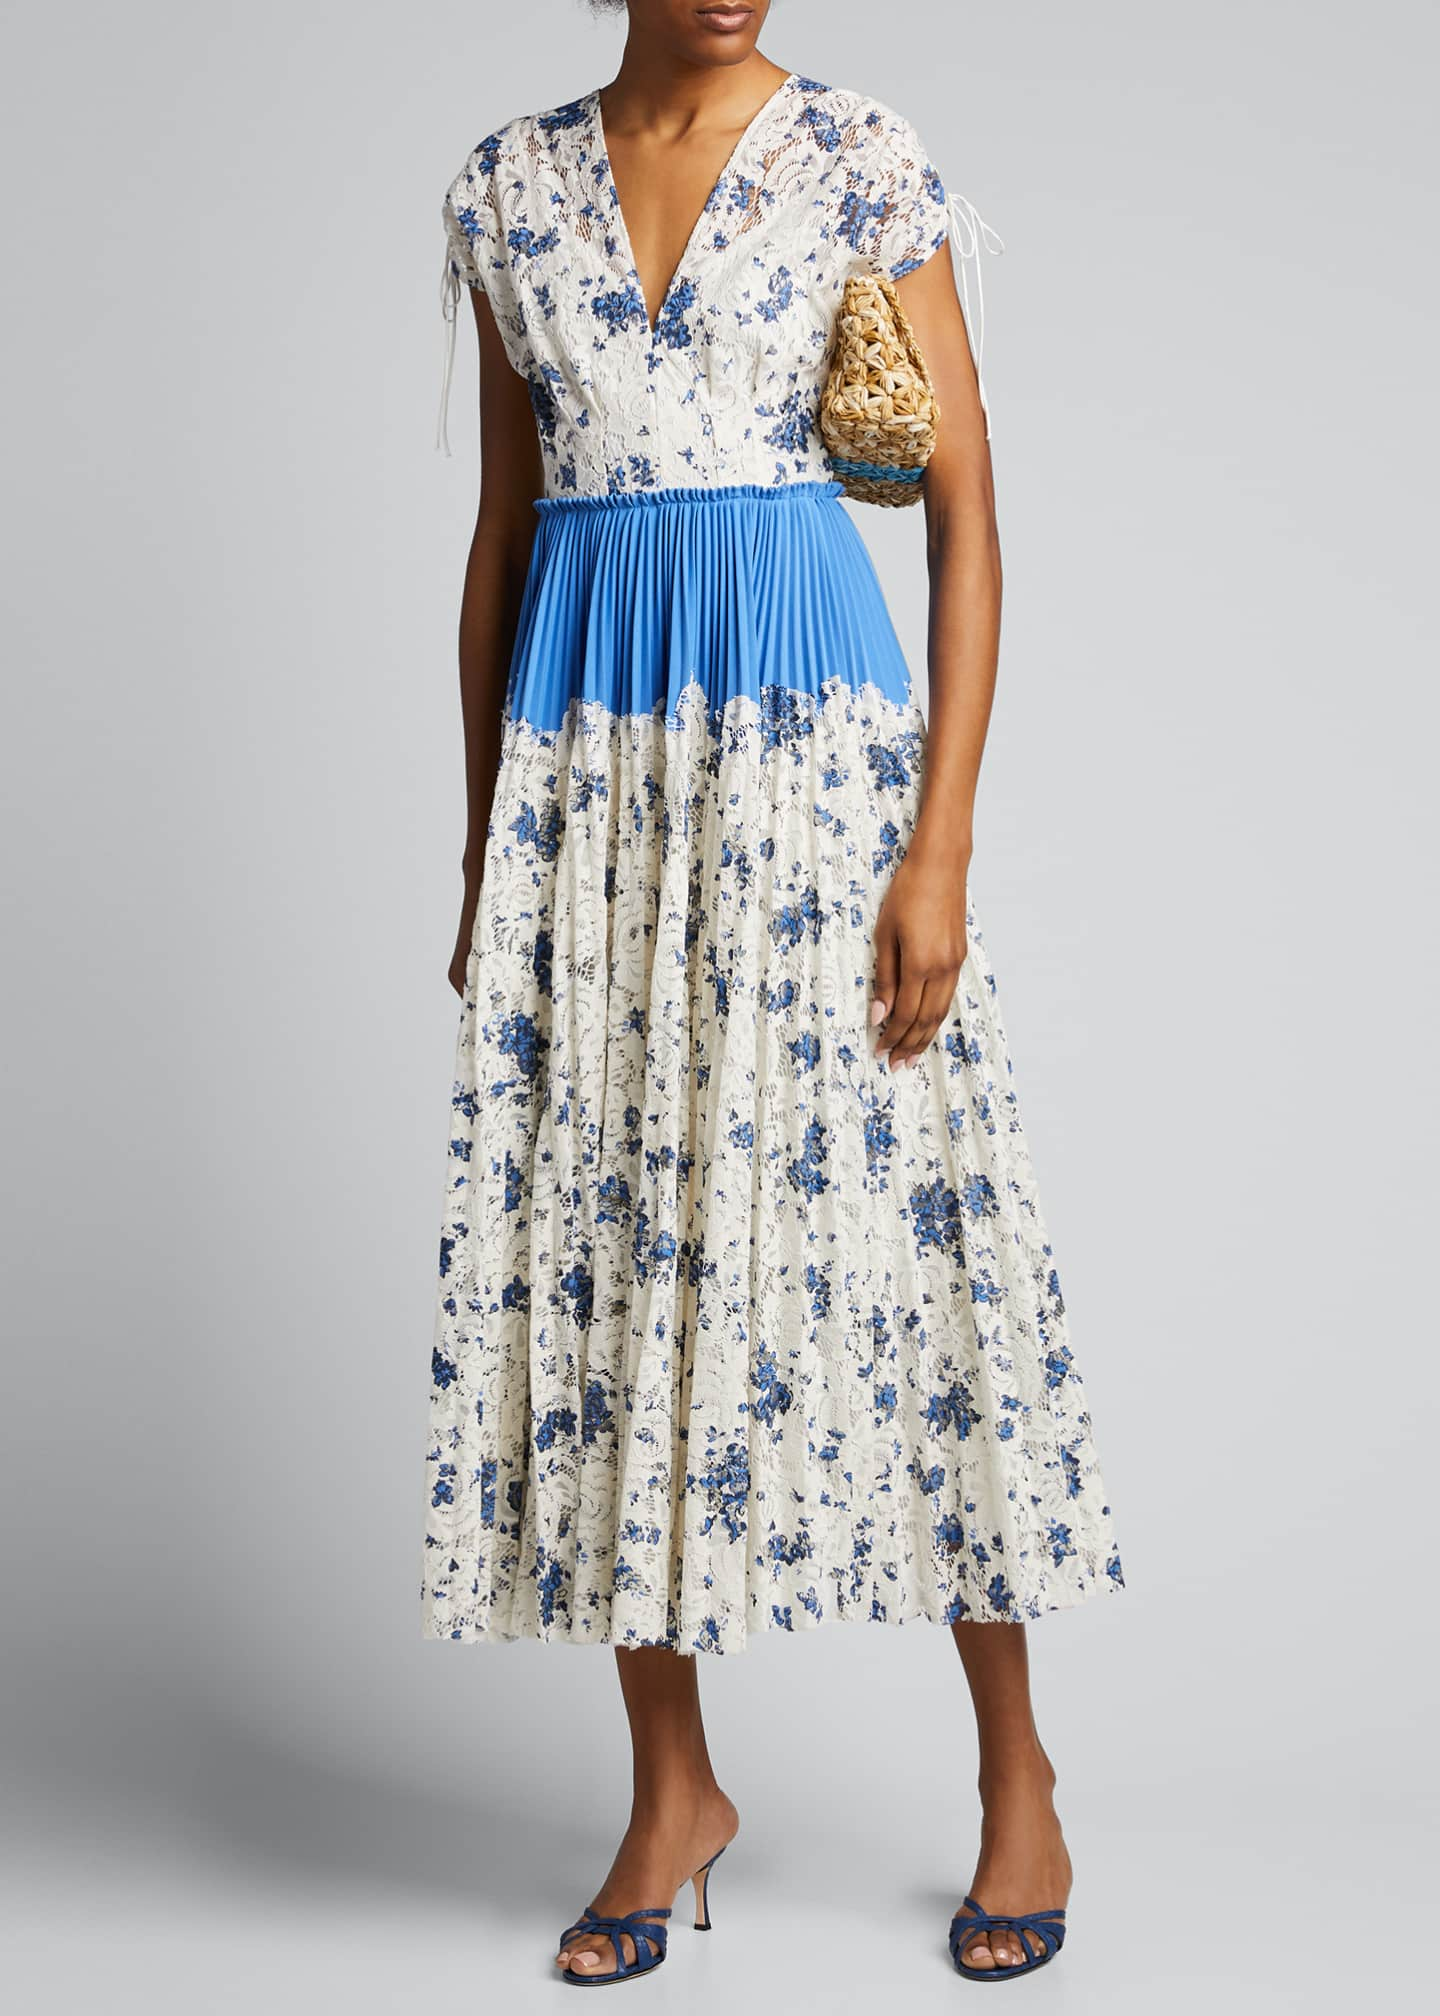 Lela Rose Floral Printed Corded Lace Pleated Dress